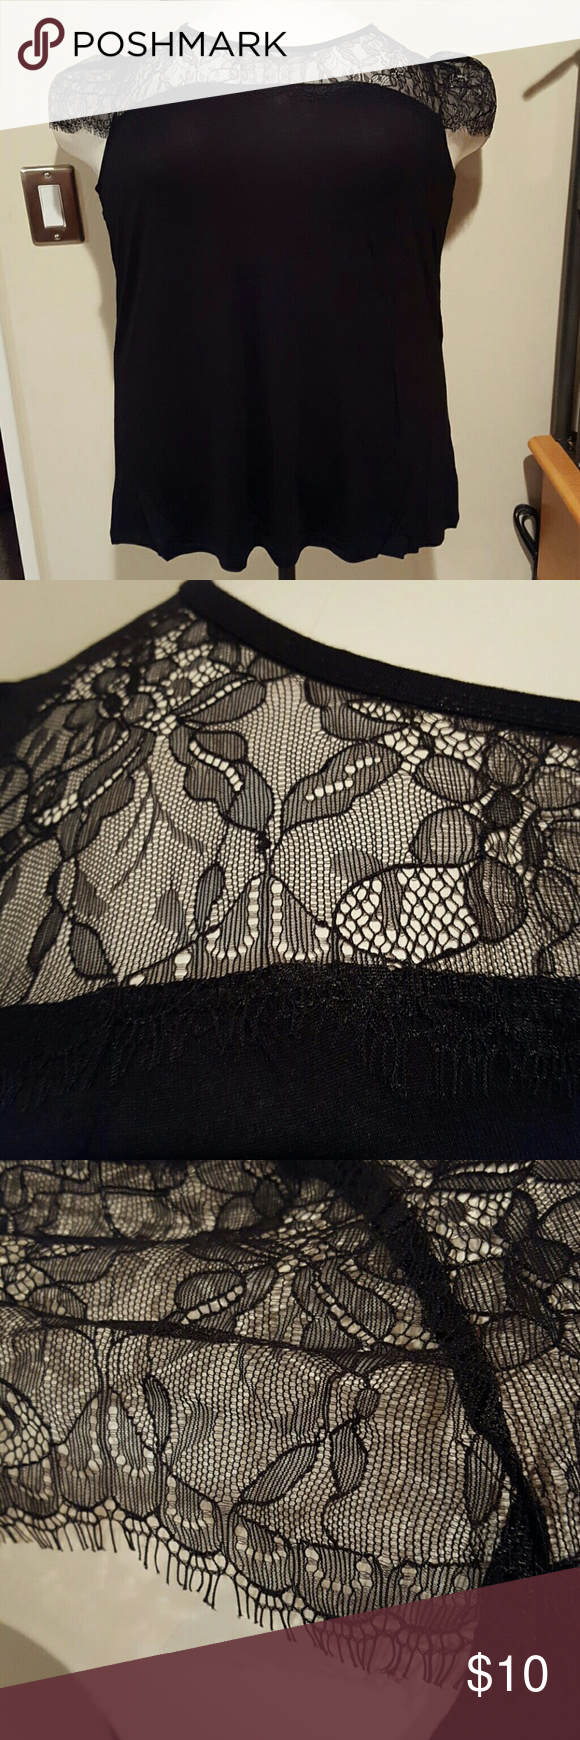 Nicole Richie lace neckline and sleeves top Rayon spandex nylon blend top with cap sleeves. Top has lightweight stretchy material with see-through lace at the neckline to the shoulders and the cap sleeves. The back is solid black. Brand new without tags and never worn. Nicole Richie Tops Tees - Short Sleeve